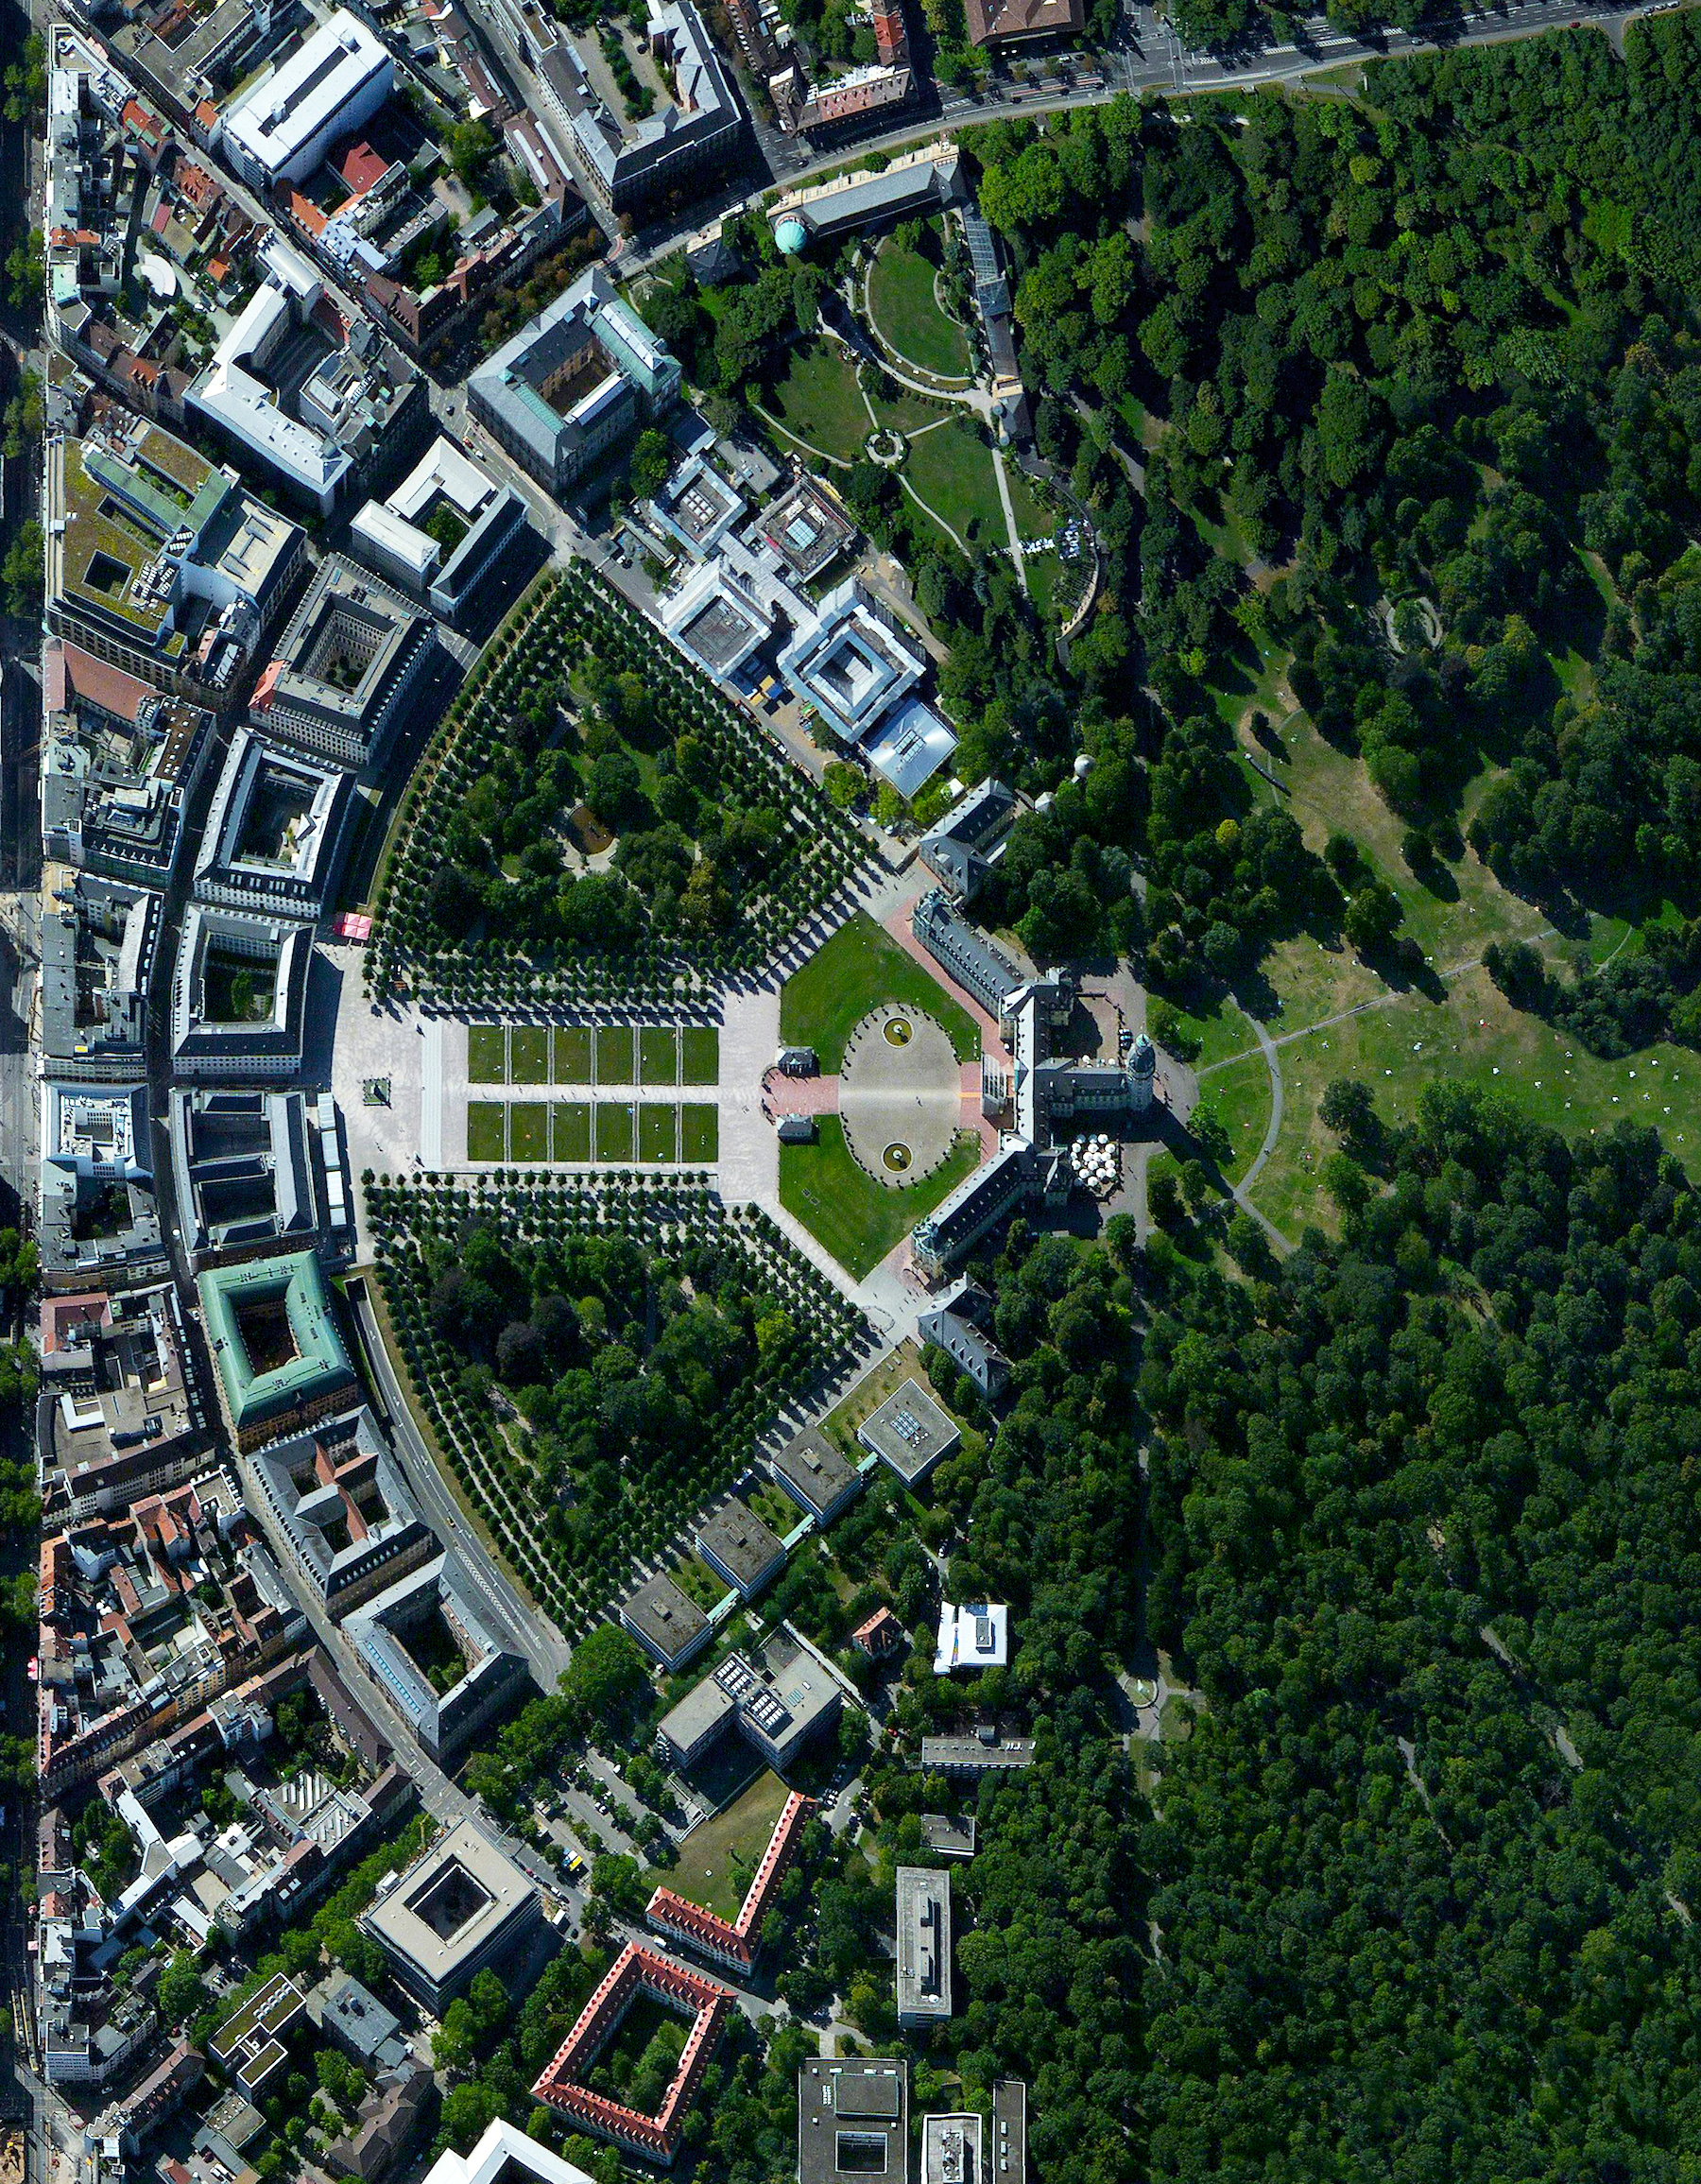 """8/24/2016   Karlsruhe, Germany   49°00′33″N 8°24′14″E    The city of Karlsruhe, Germany was planned with a palace tower at its center, surrounded by 32 radiating streets. Because the design resembled the ribs of a folding fan, the city is sometimes called the """"fan city"""" or """"Fächerstadt."""" Additionally, this city's urban plan gave rise to the geometry concept of """"Karlsruhe Metric"""" which refers to a measure of distance that assumes travel is only possible along radial streets and along circular avenues around the center."""